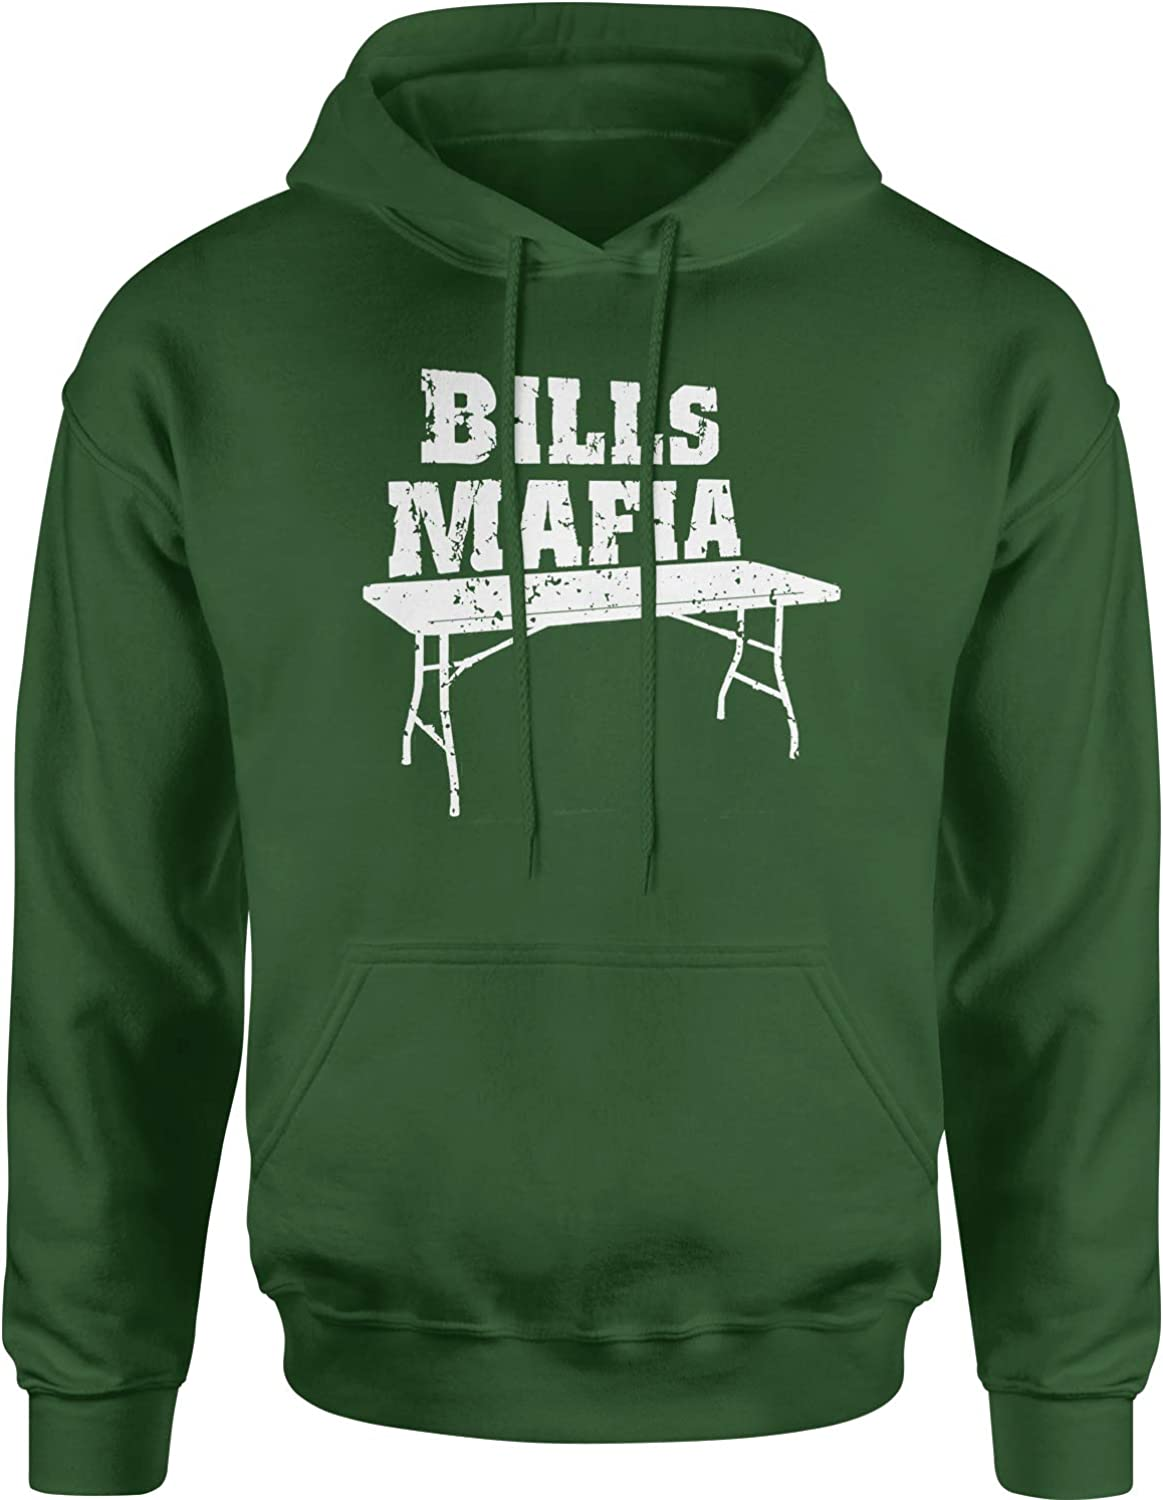 Expression Tees Bills Mafia Football Fan Unisex Adult Hoodie